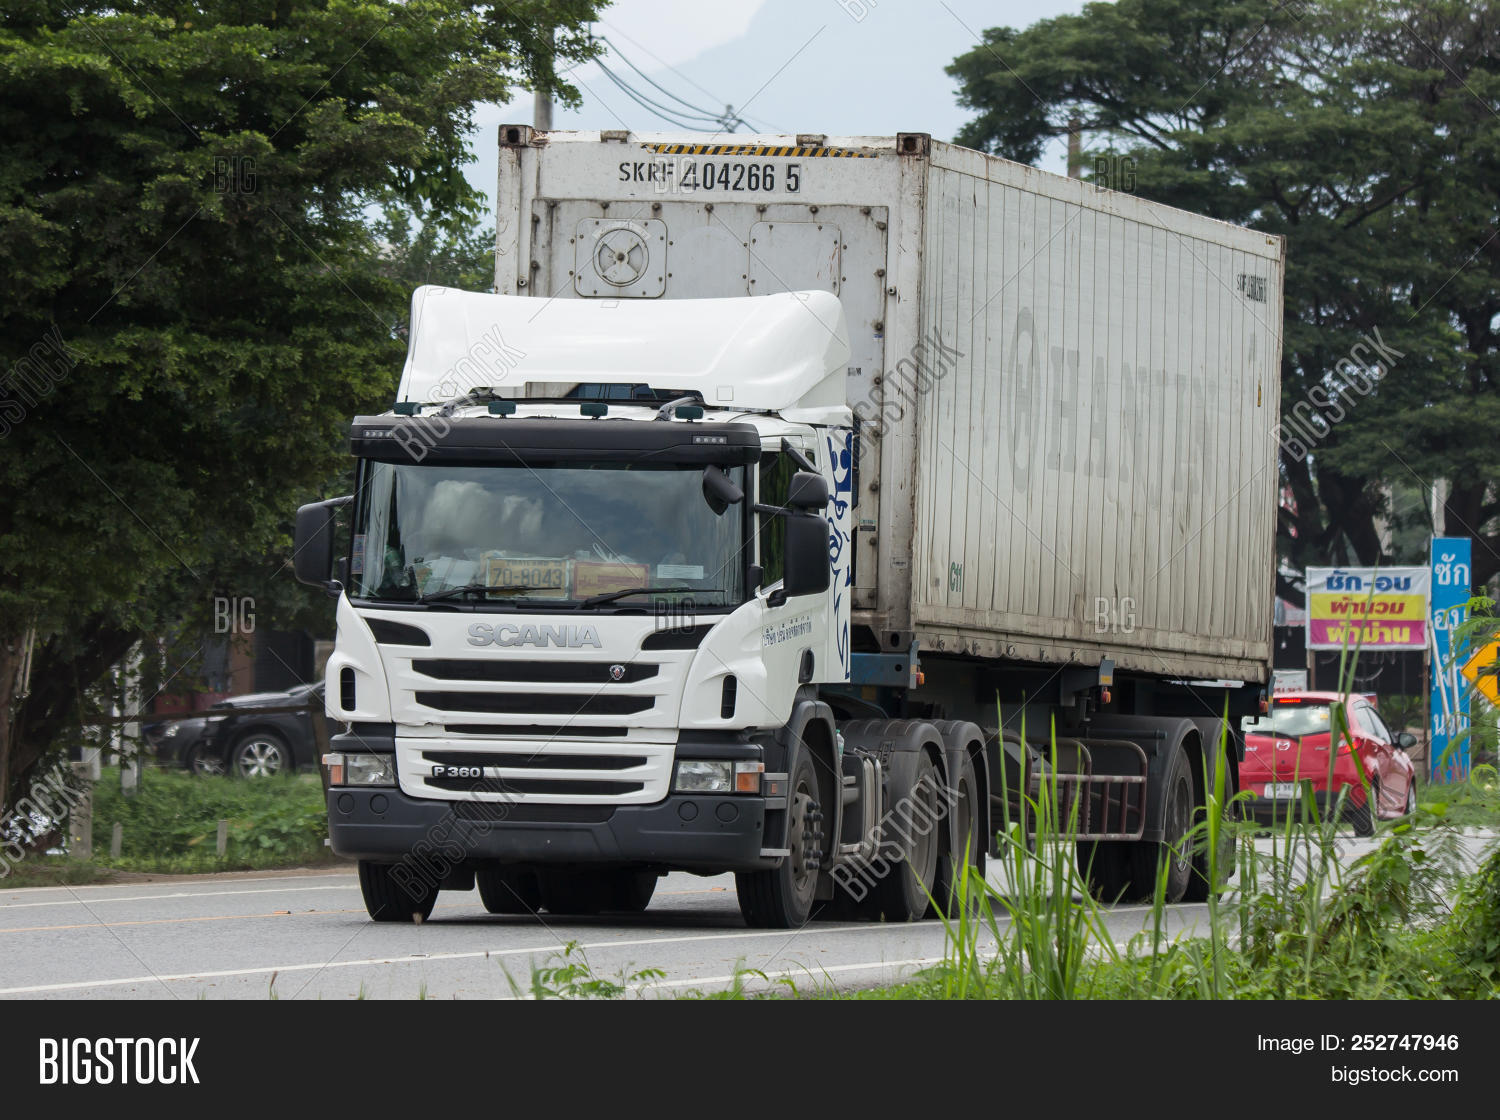 Container Truck Parame Image & Photo (Free Trial) | Bigstock